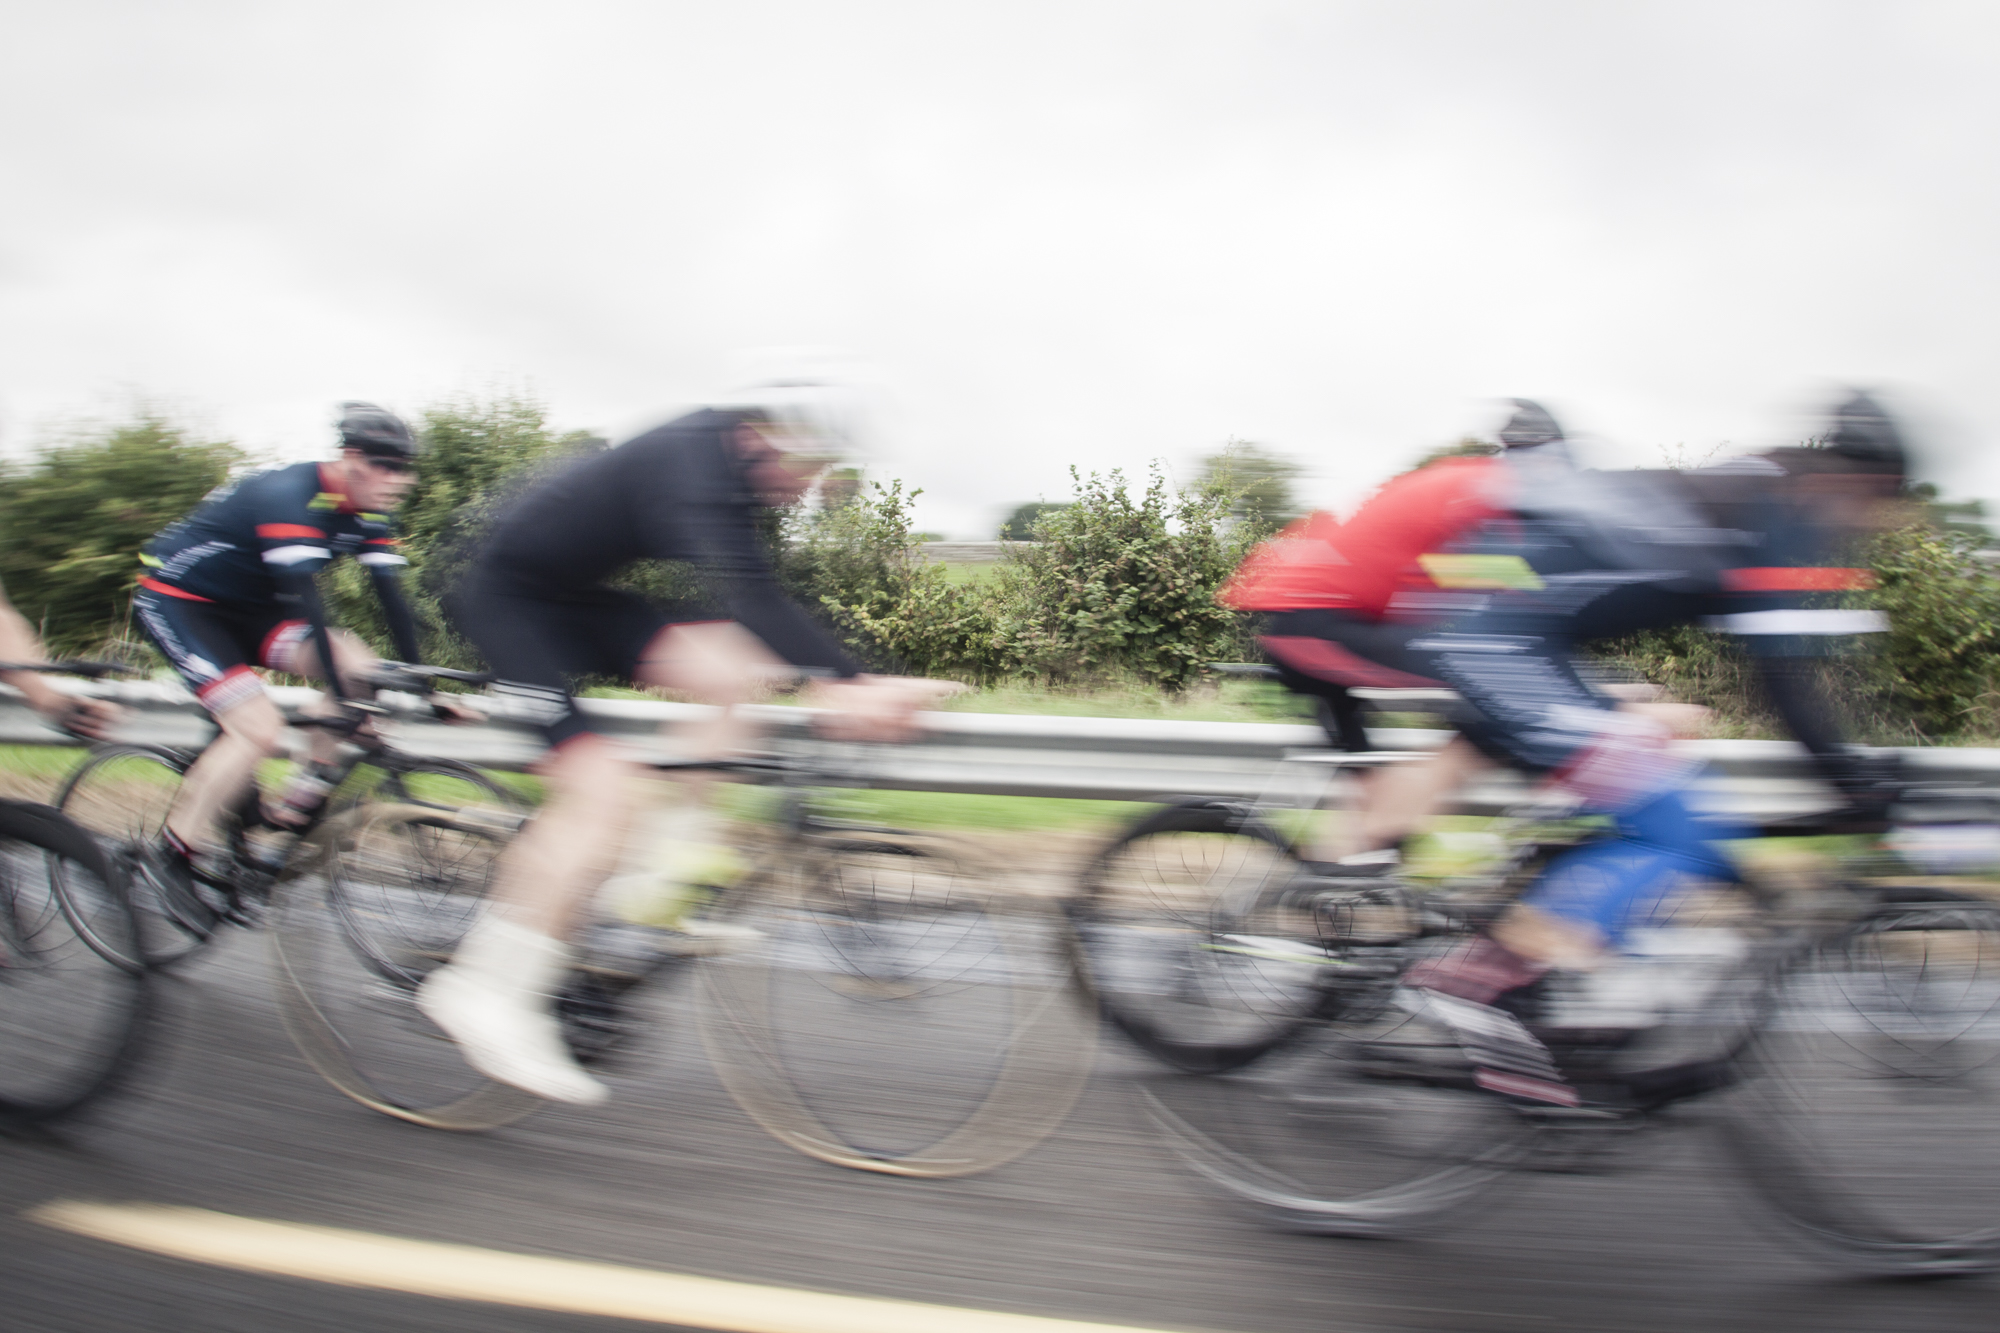 Galway Bay Paul Giblin Championship race 2018, cyling photography, donal kelly